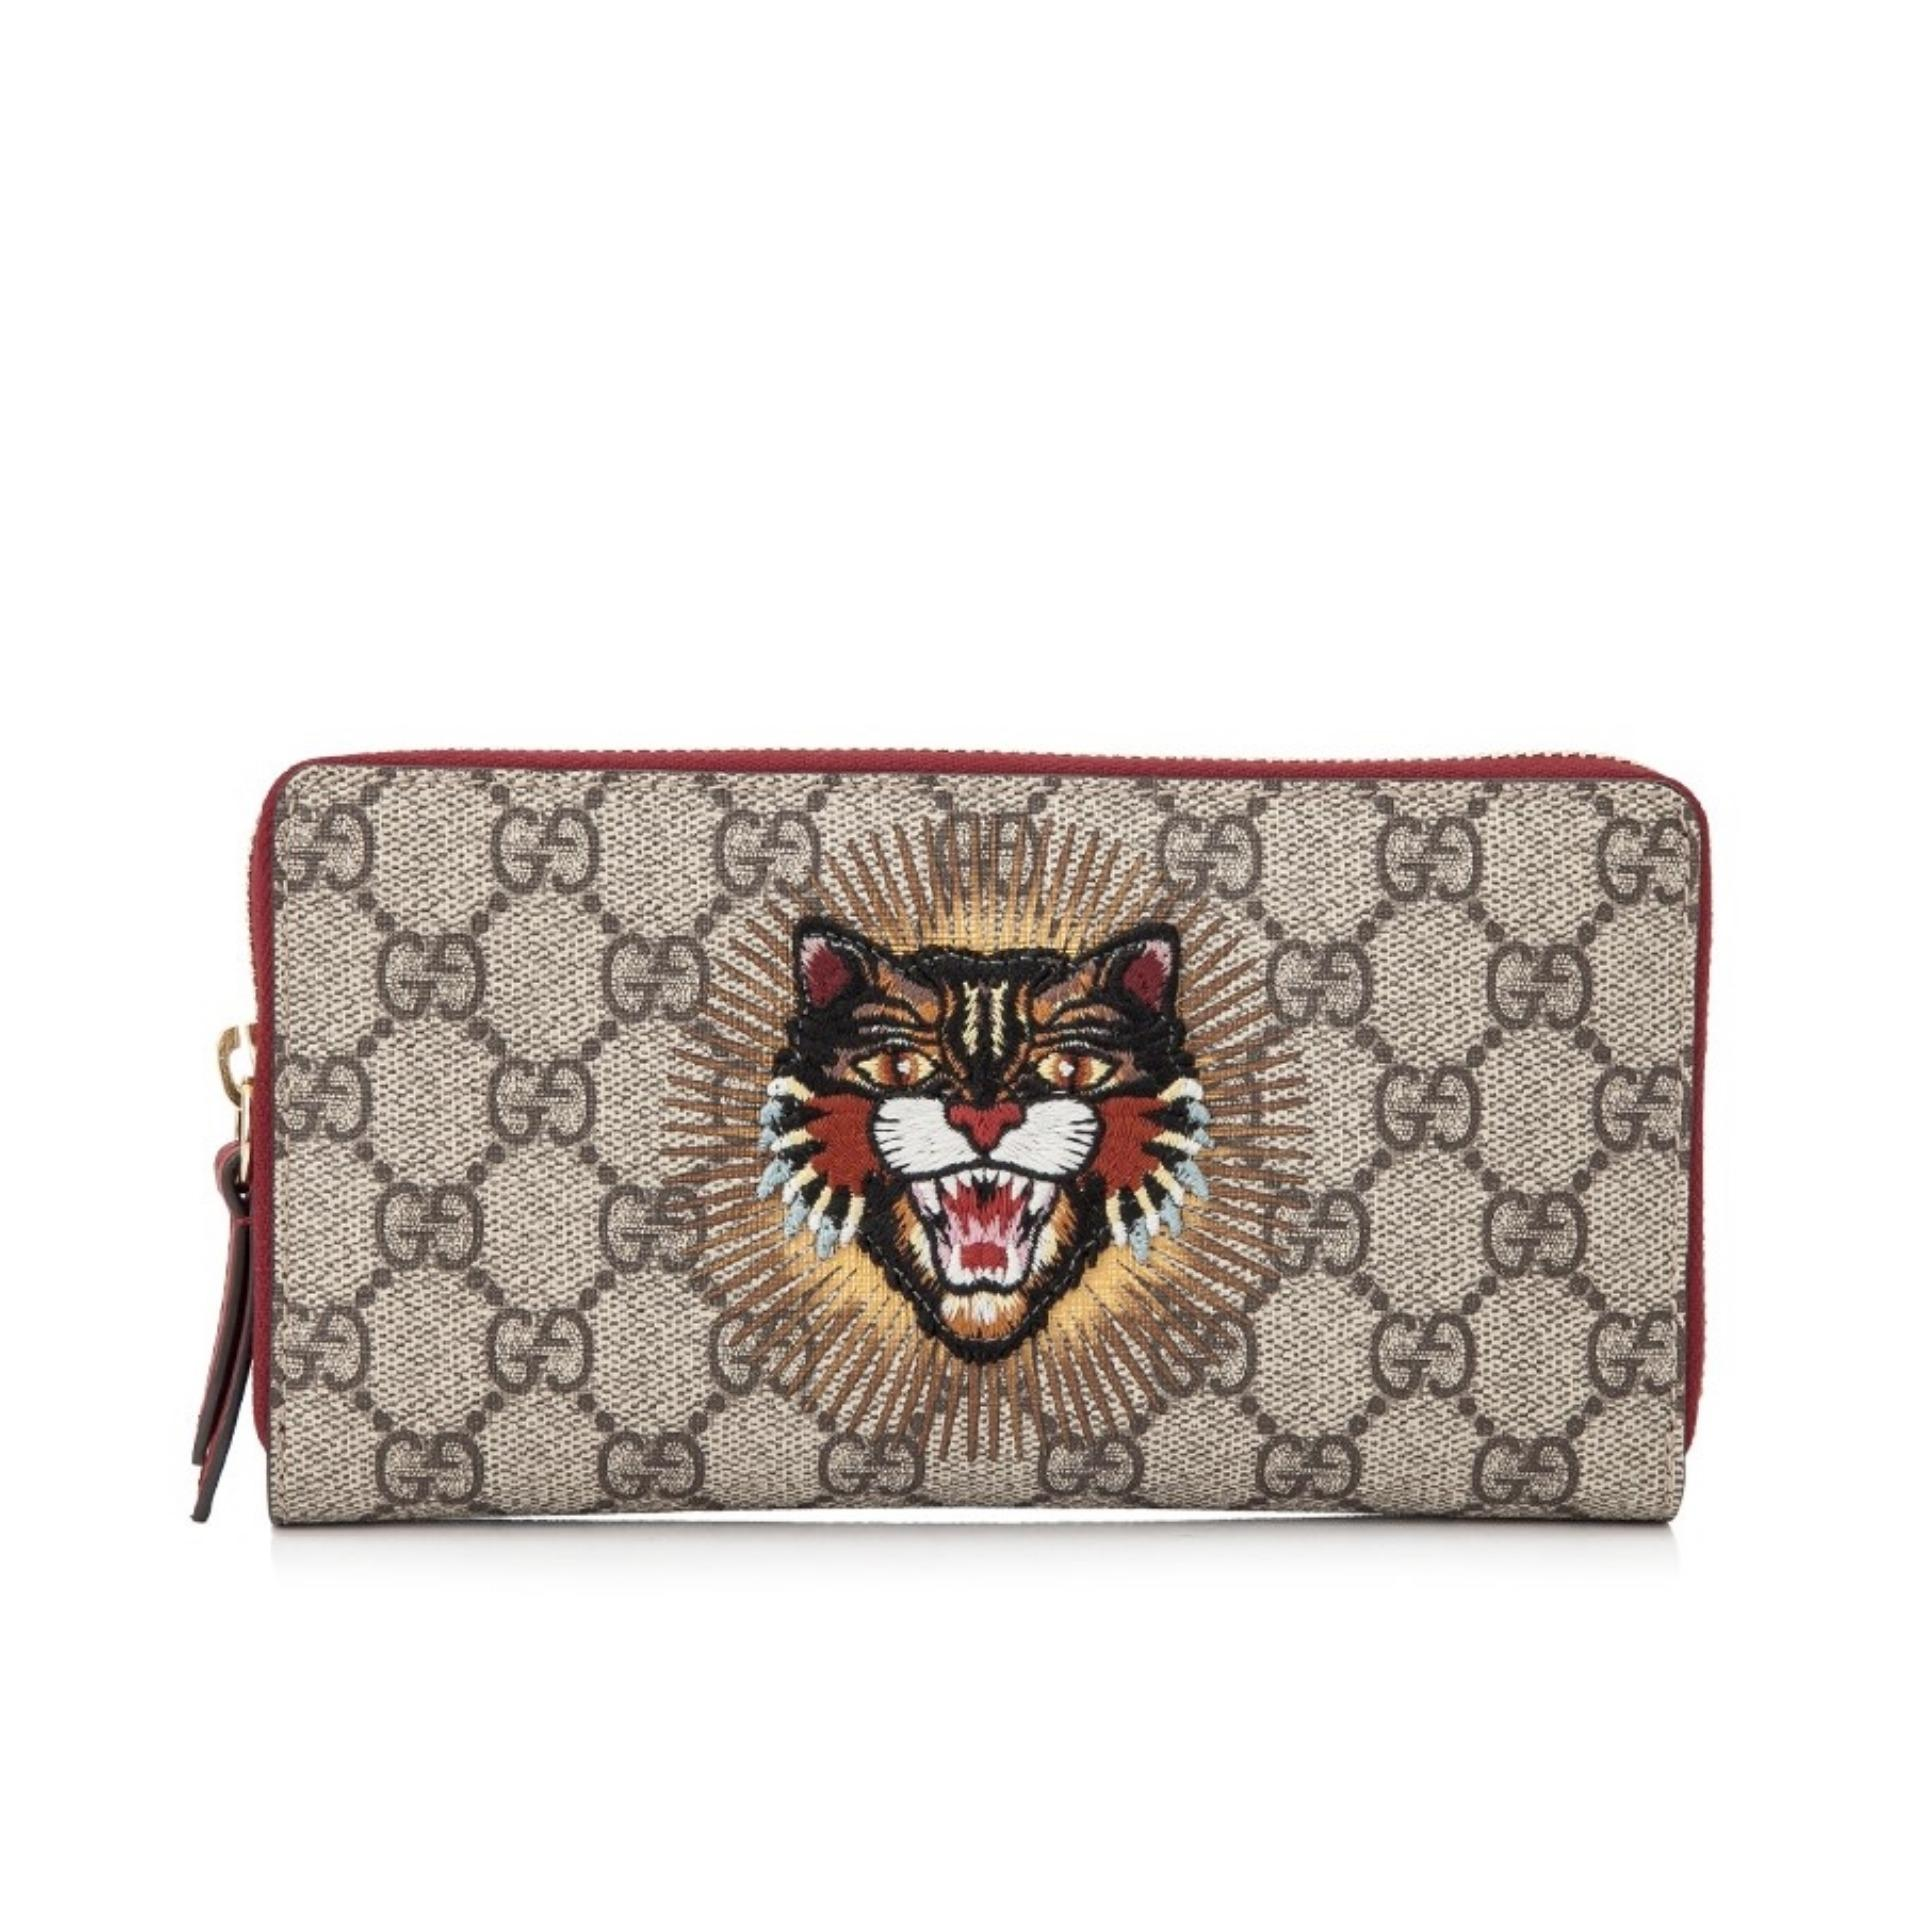 03fb5b244b9 Gucci GG Supreme Angry Cat Long Zip Around Wallet (Beige)   4764139CO1G9794